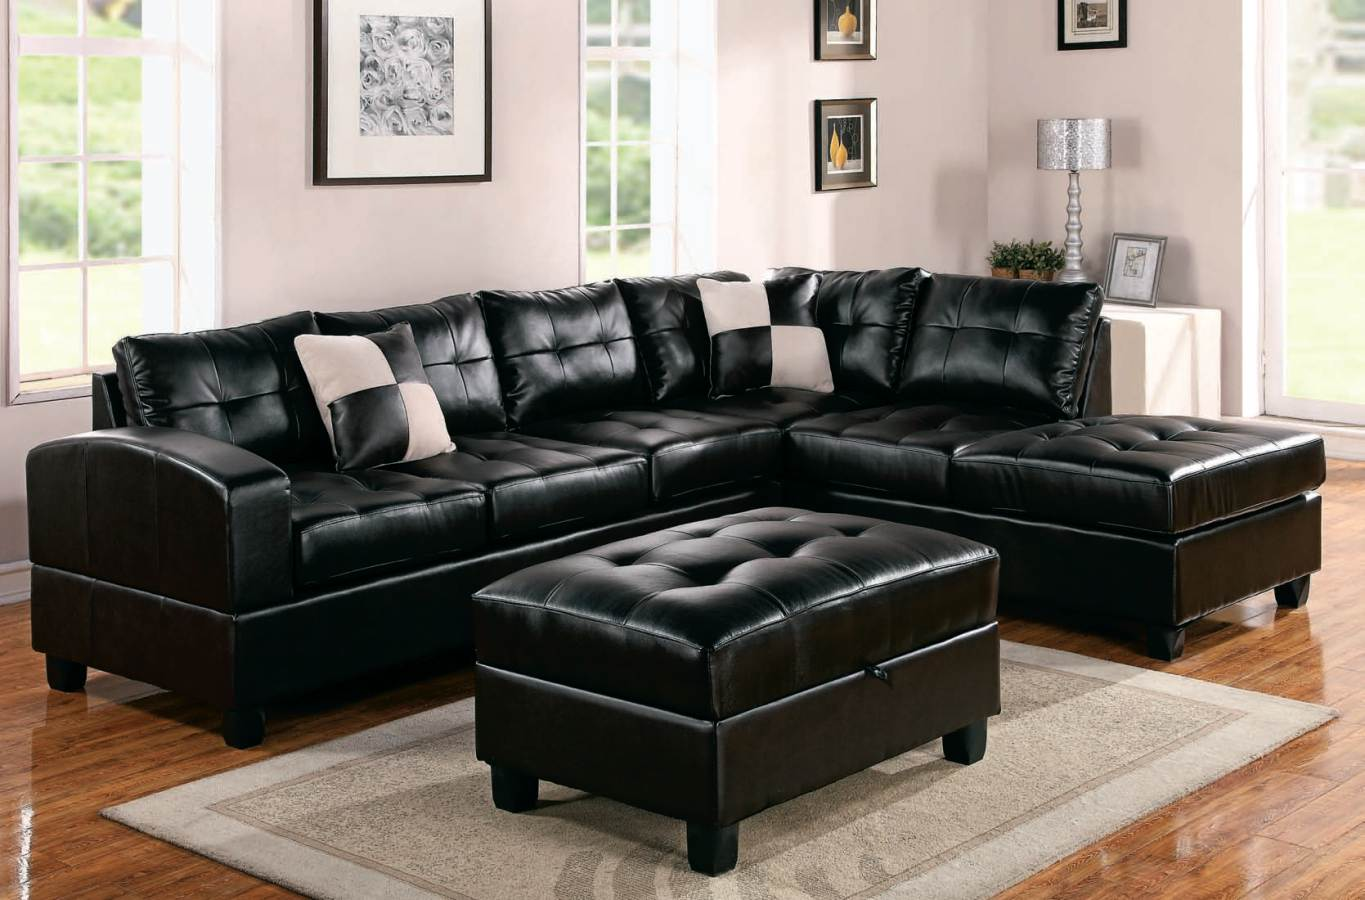 black and white leather sofa durability modern sectional home furniture design